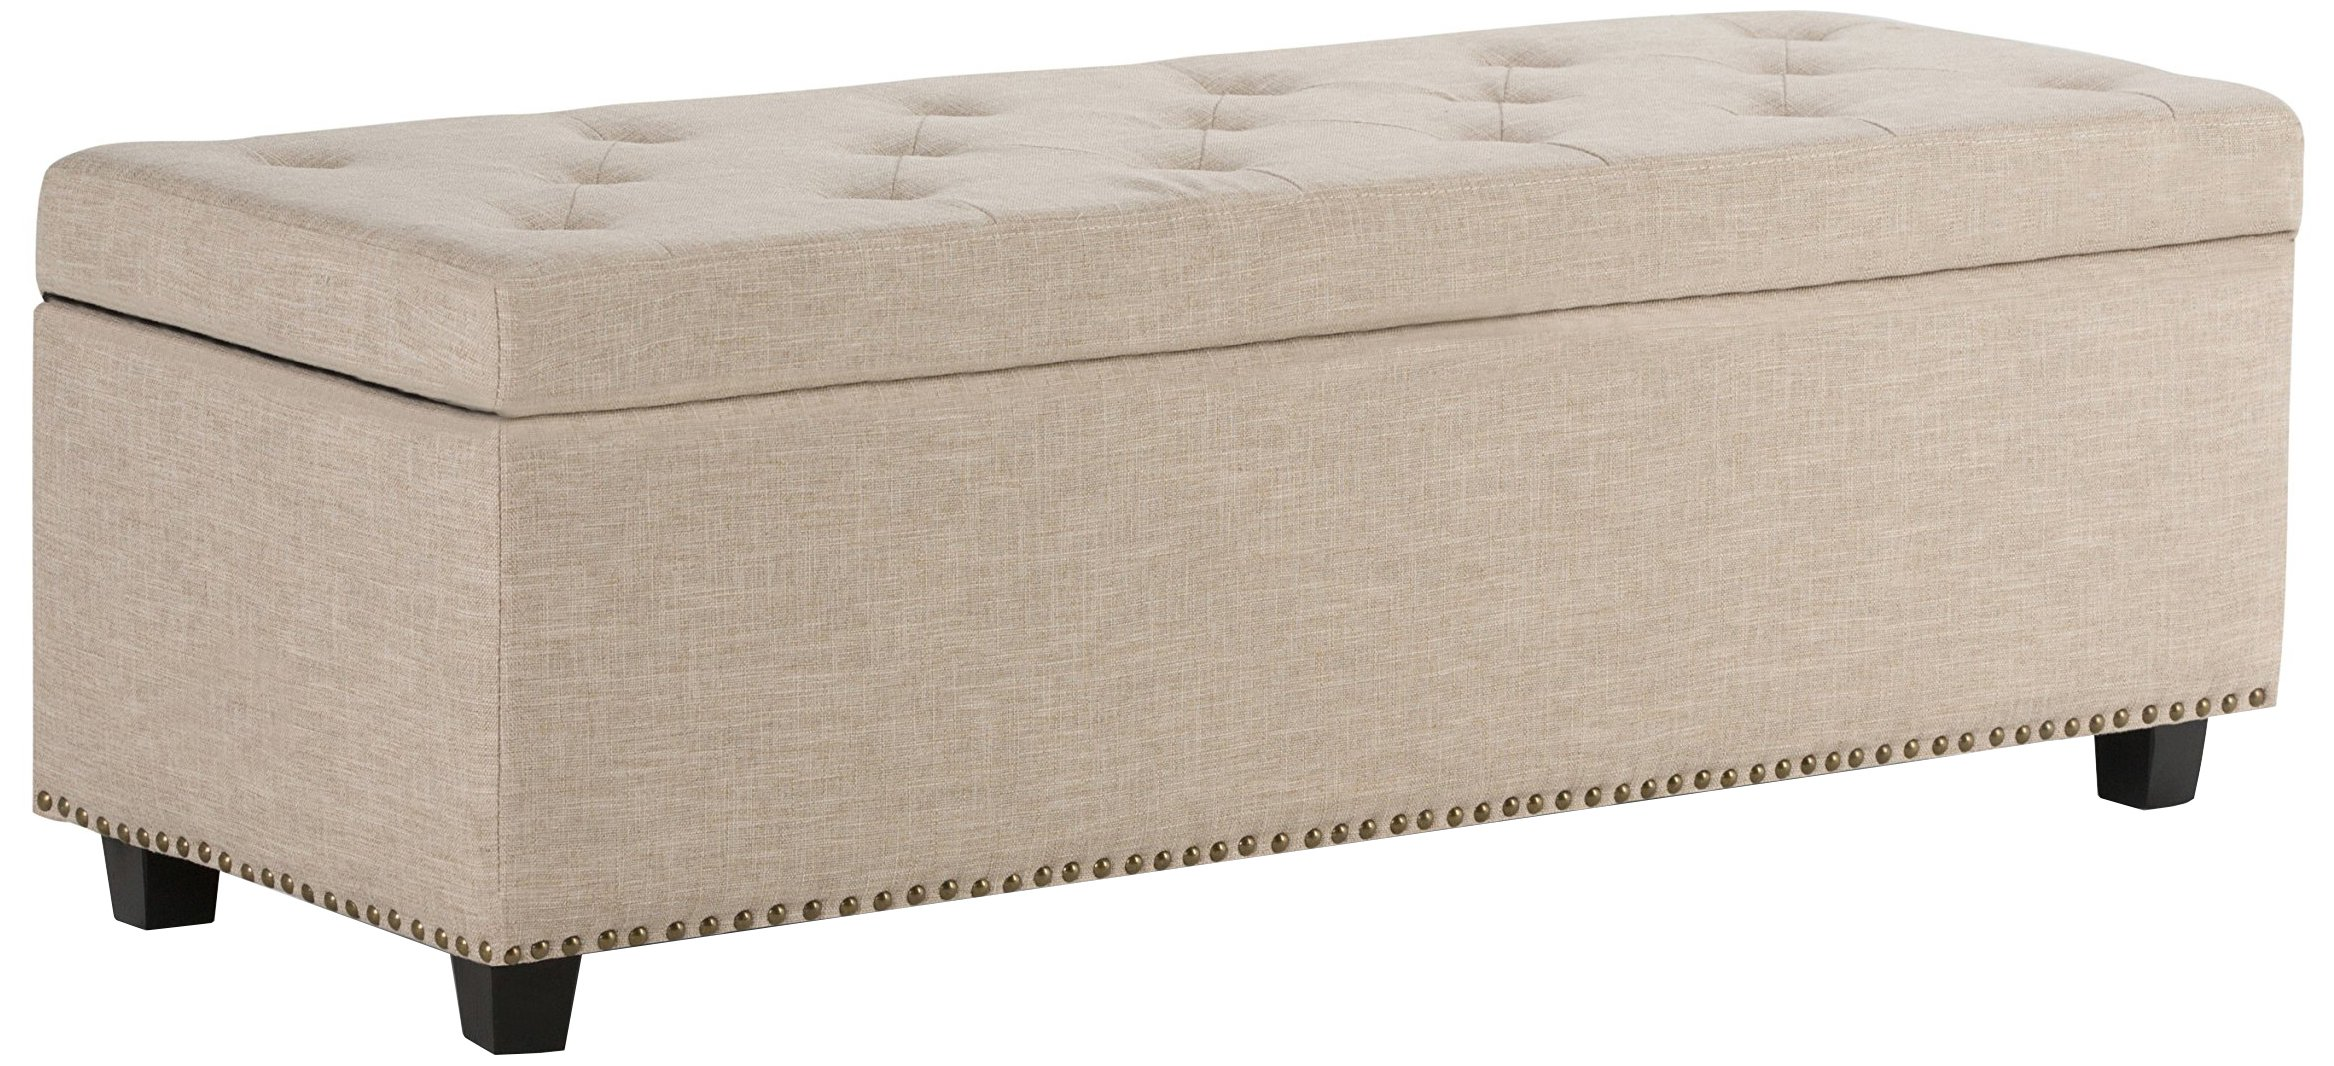 Simpli Home 3AXCOT-239-NL Hamilton 48 inch Traditional Storage Ottoman in Natural Linen Look Fabric